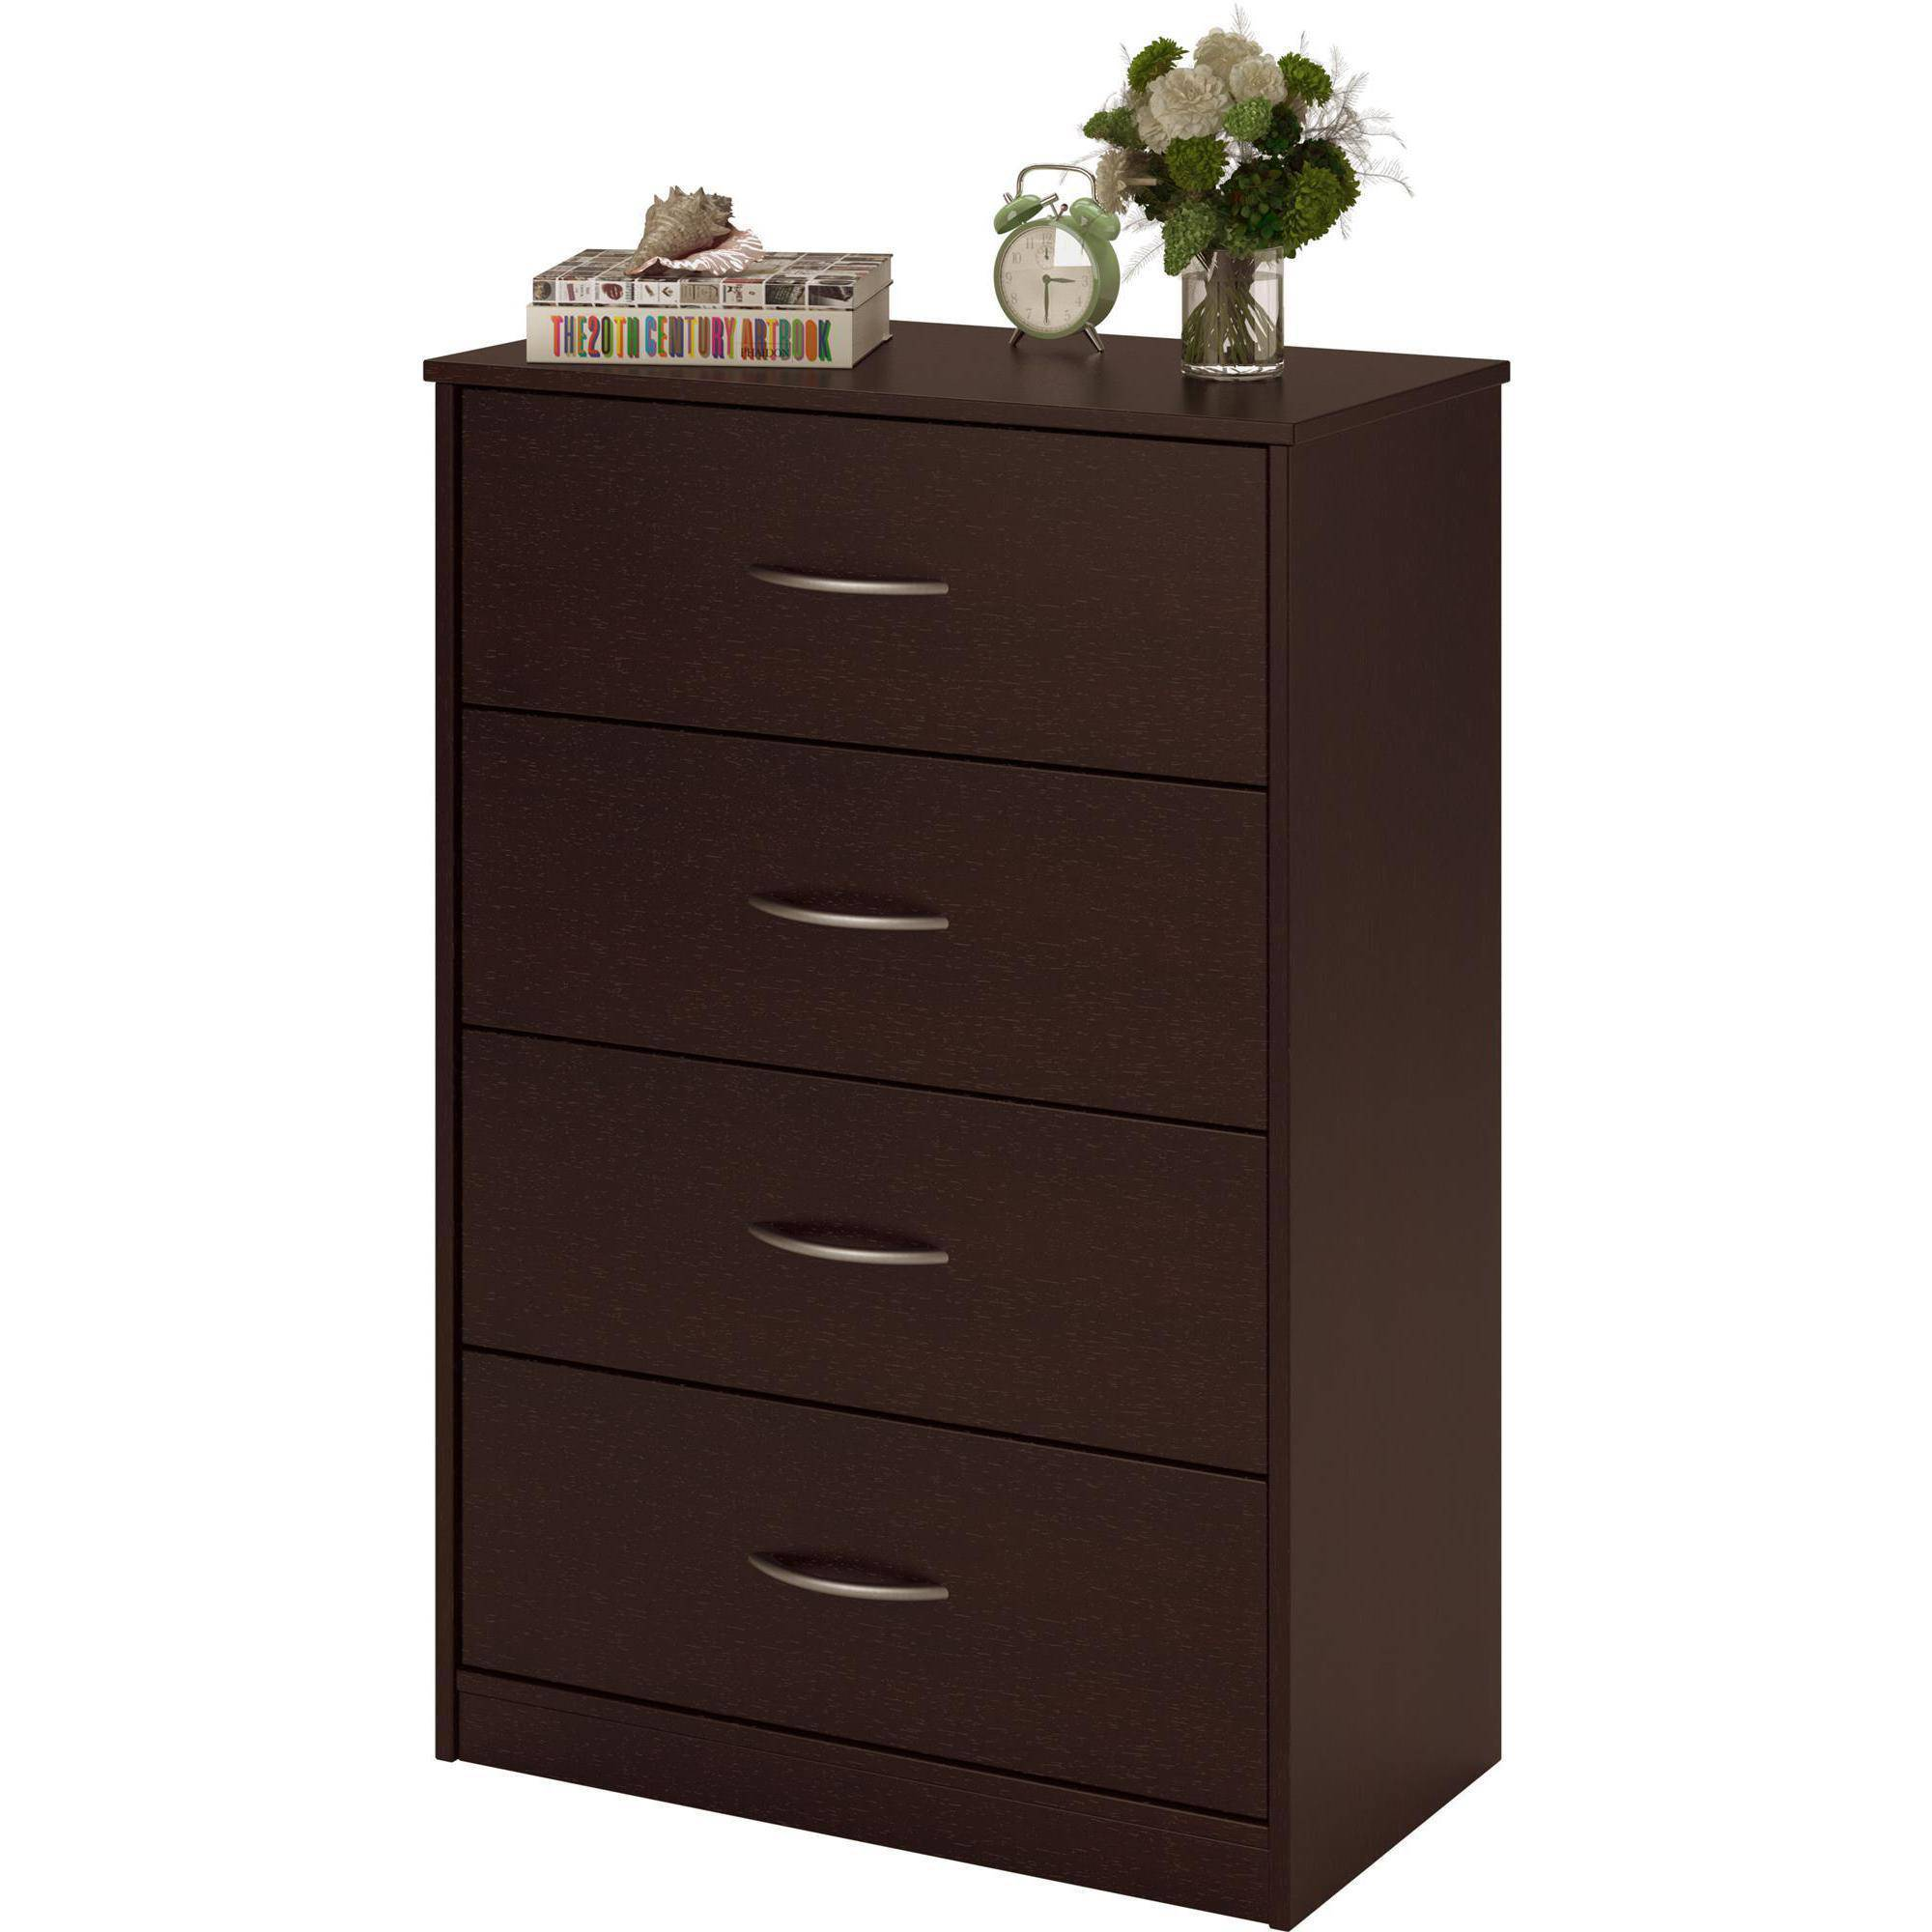 4 drawer dresser chest bedroom furniture black brown white